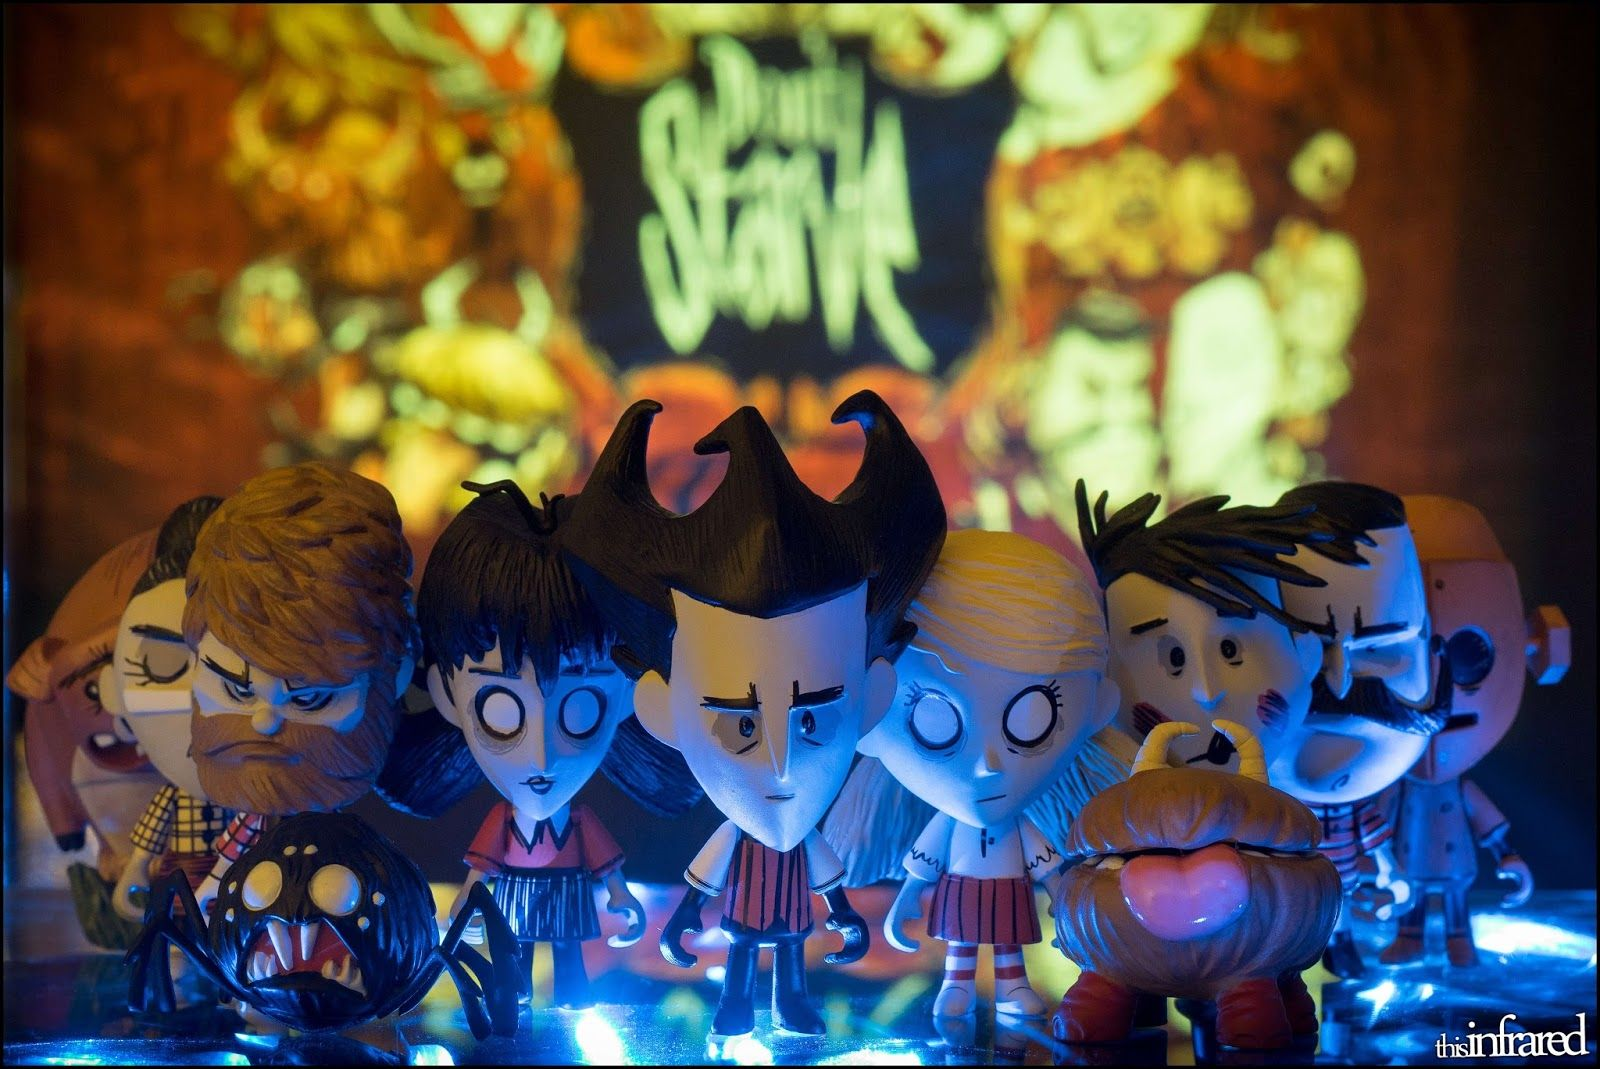 Don T Starve Blind Boxed Figures From Esc Toy Amp Klei